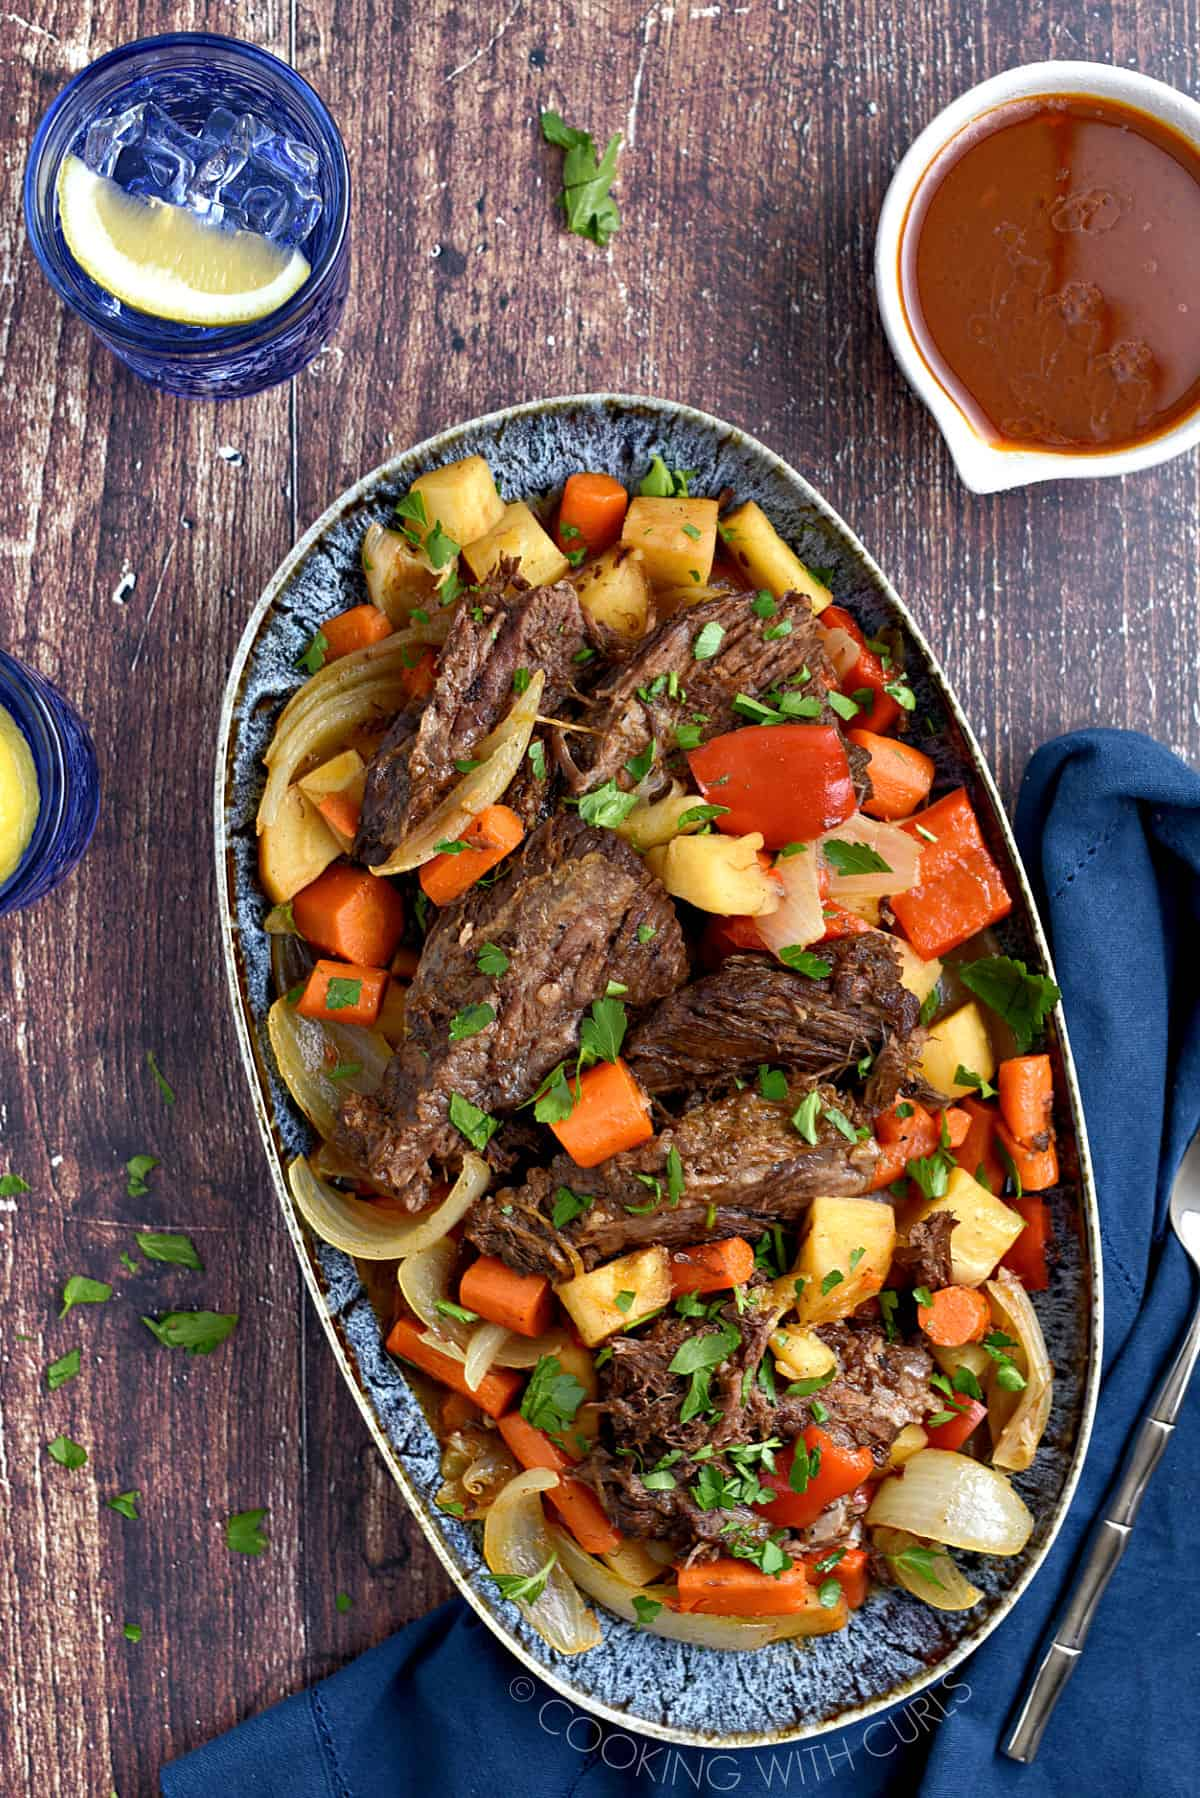 Looking down on a platter filled with Instant Pot Moroccan Pot Roast and vegetables with a blue glass of water and a white bowl of gravy in the background.